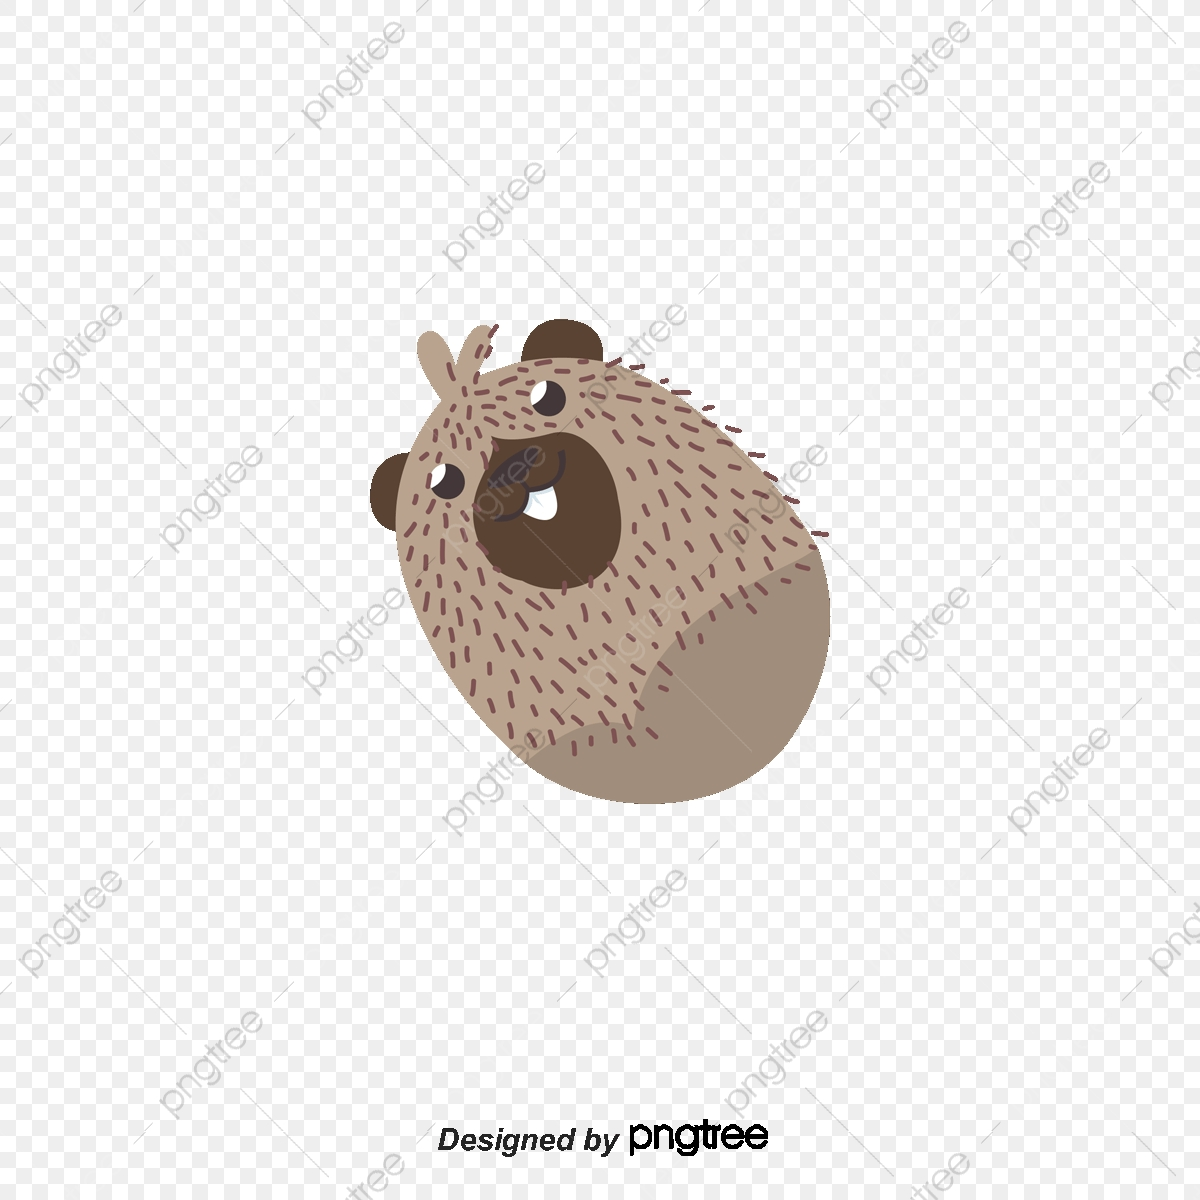 Australian Animals Png Vector Psd And Clipart With Transparent Background For Free Download Pngtree